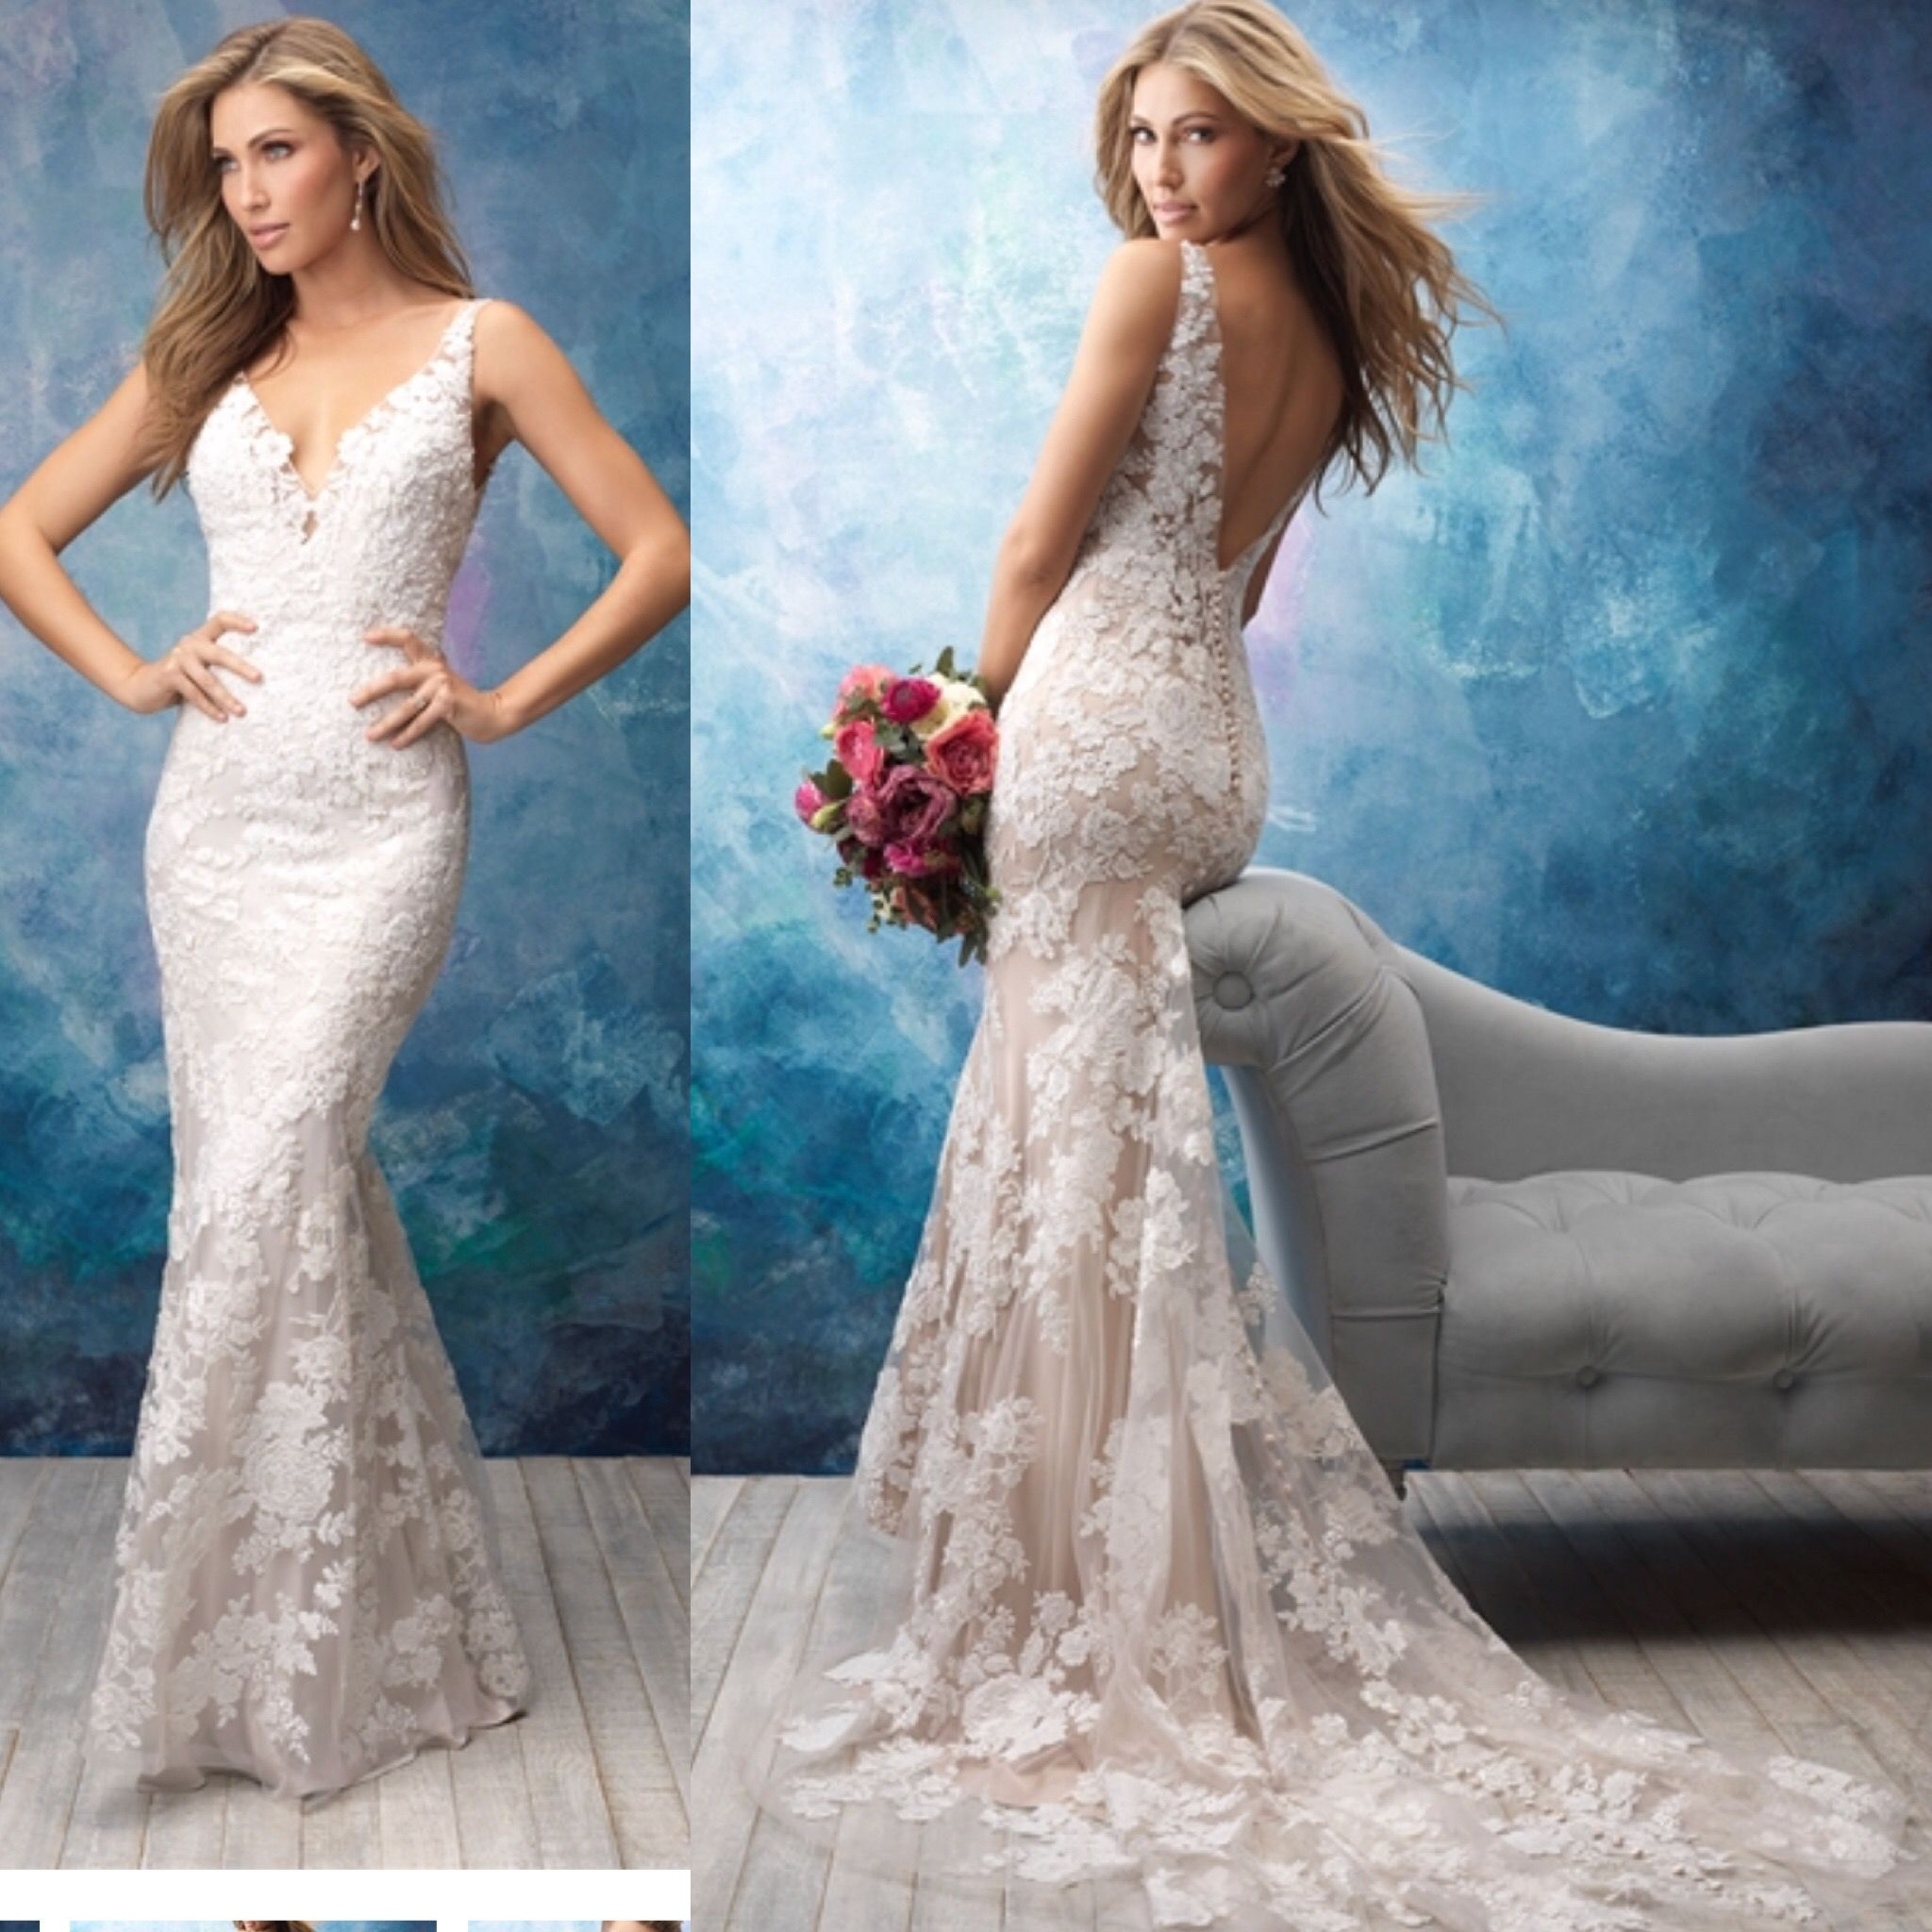 Allure Wedding Dresses Allure Bridal Dresses